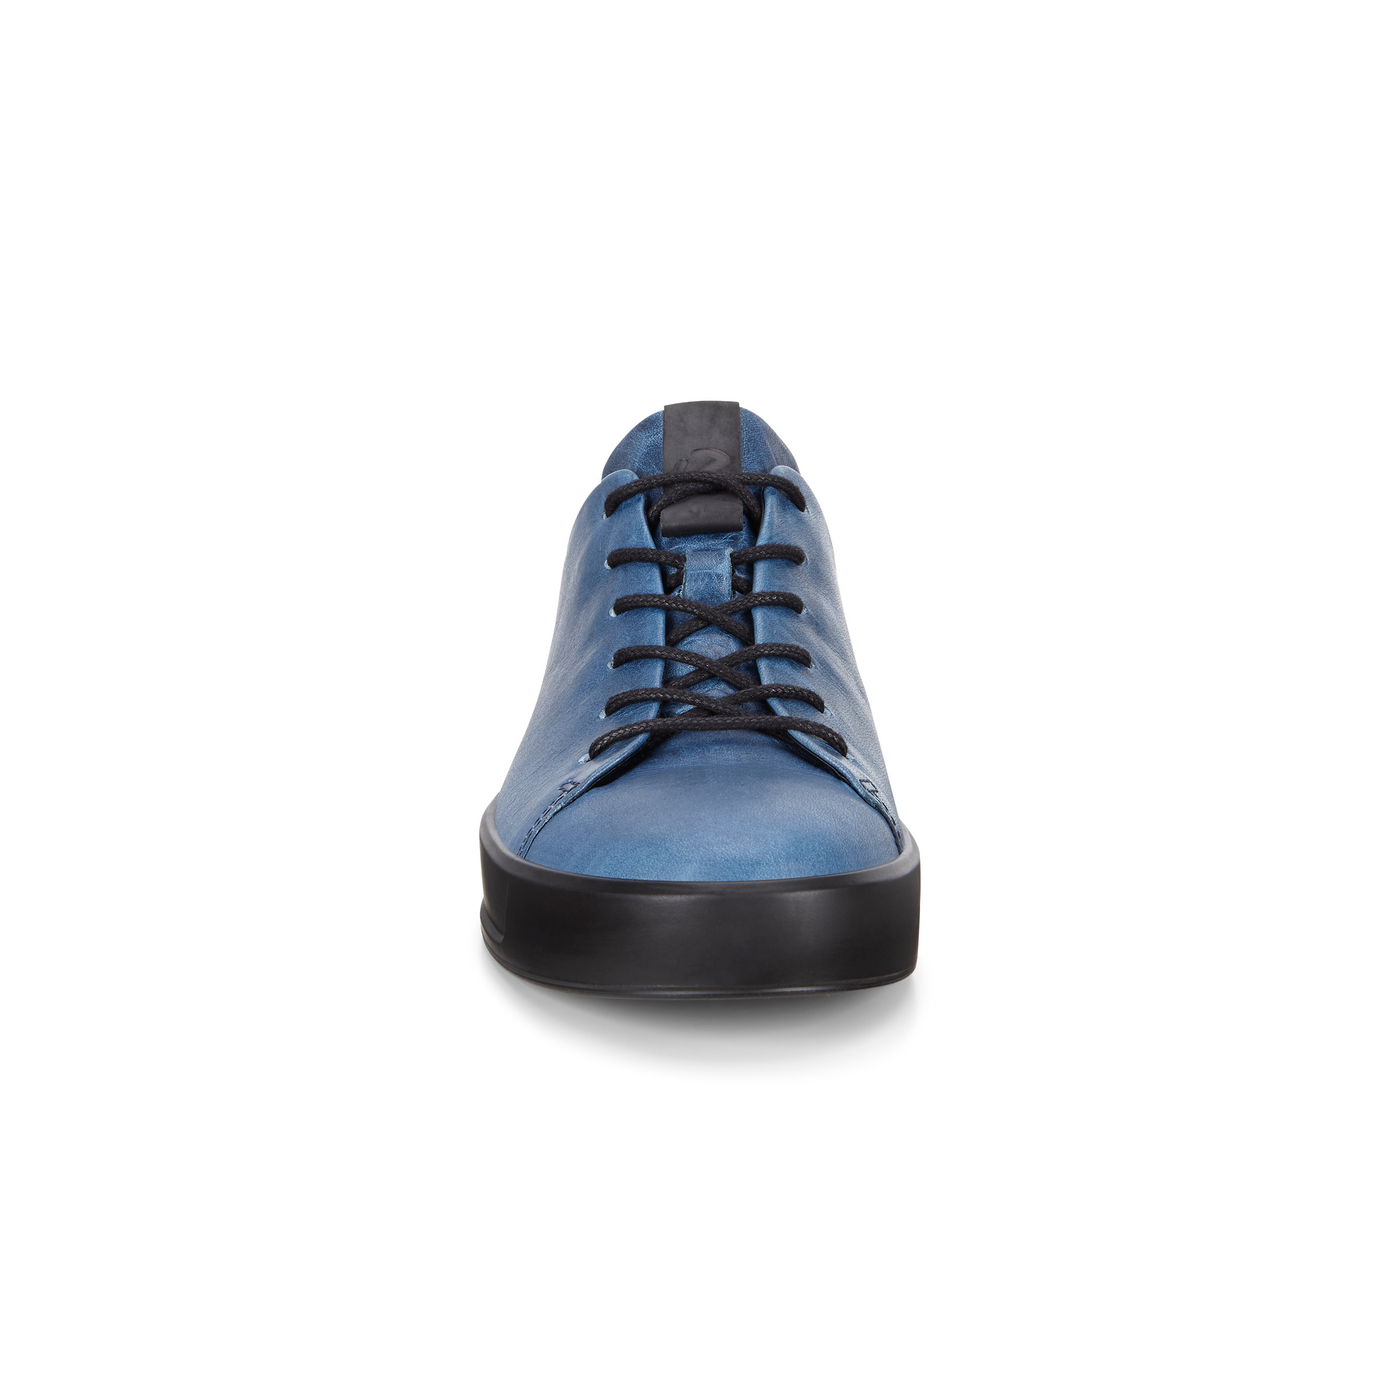 ECCO SOFT 8 MENS Shoe